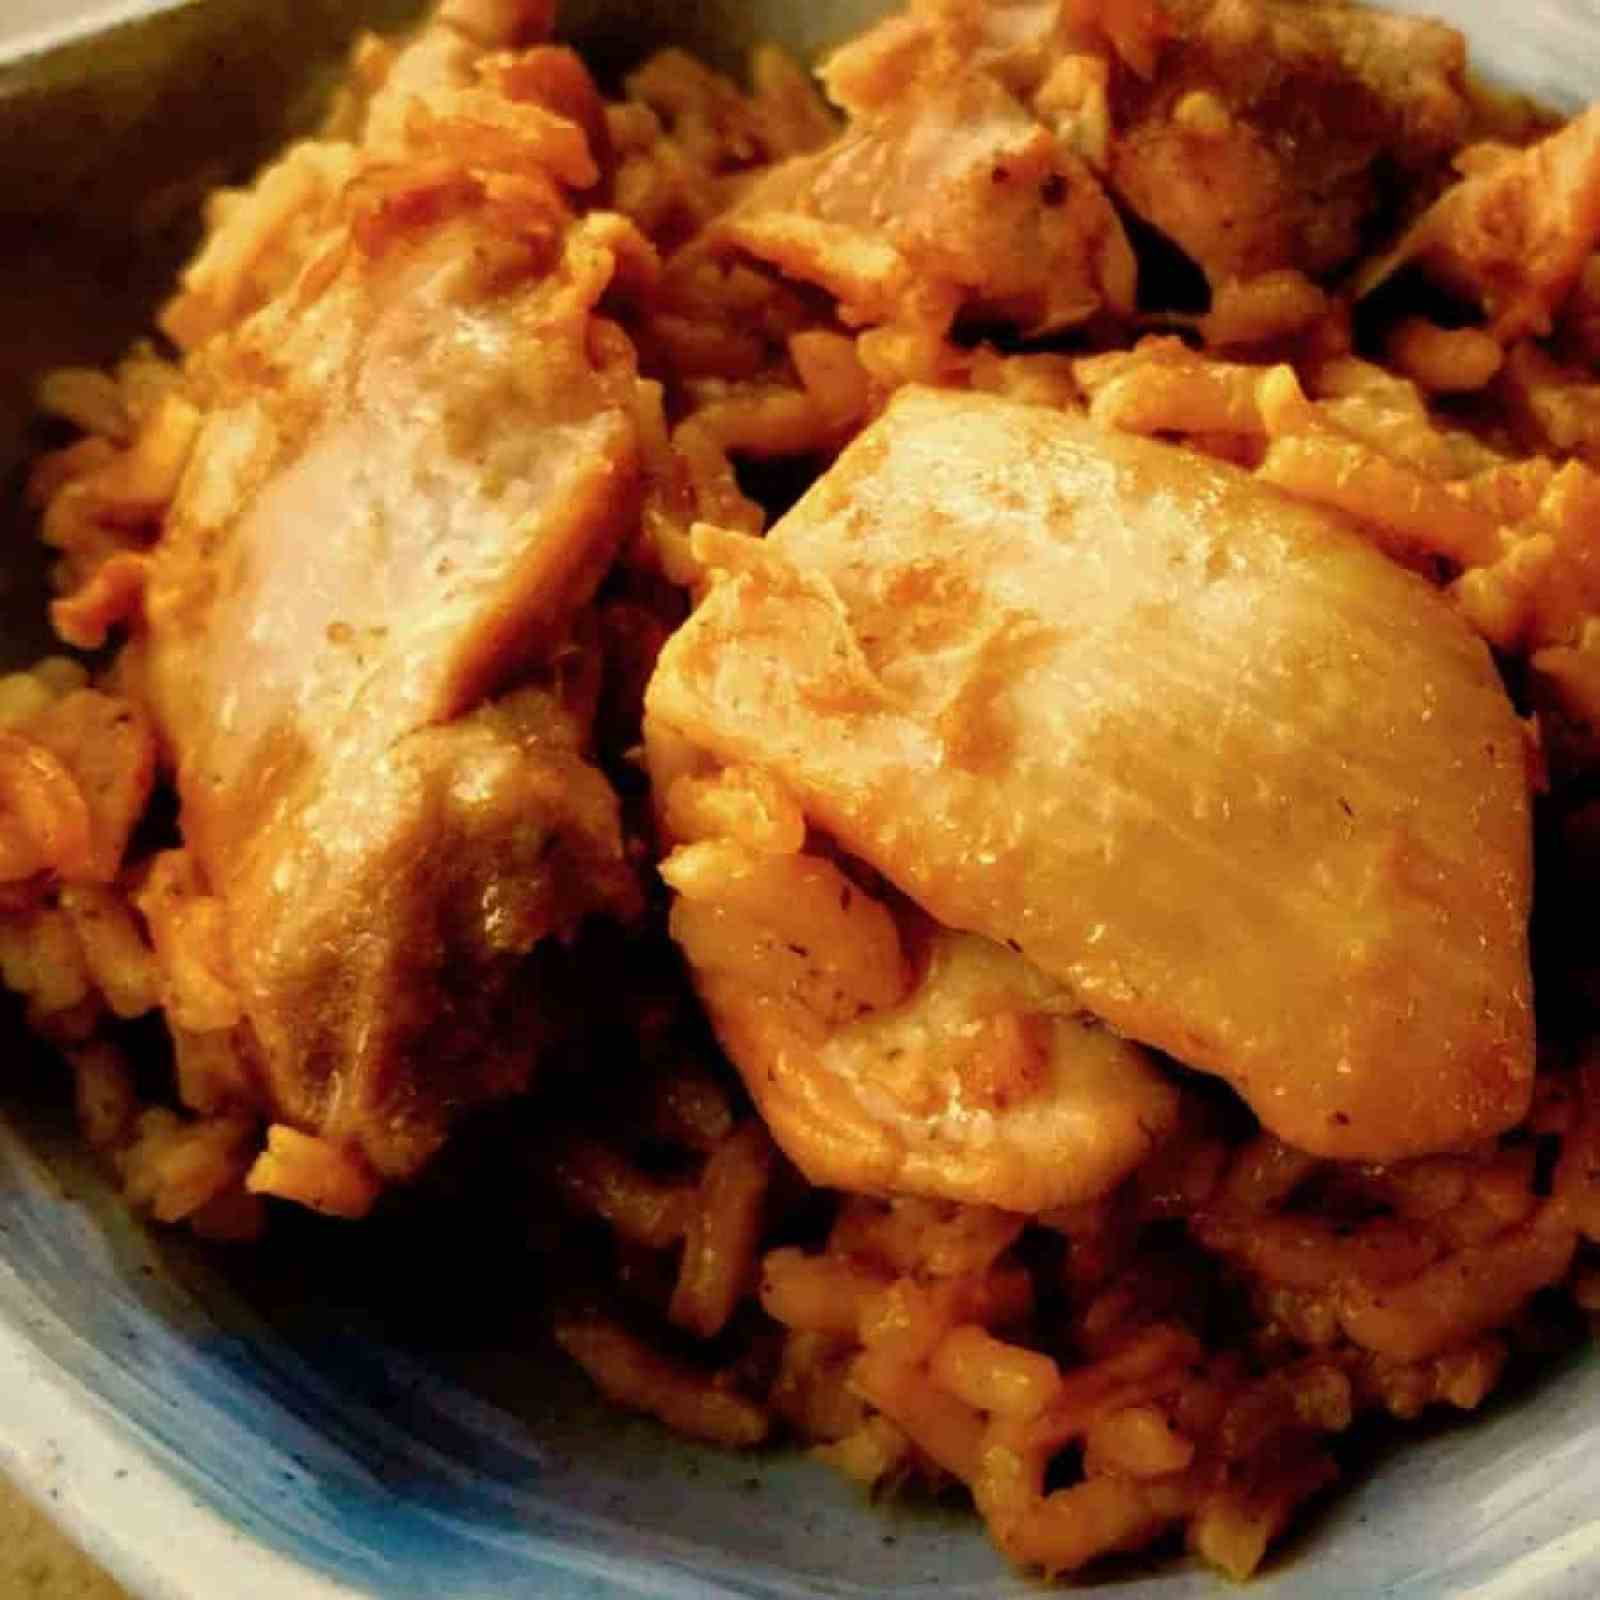 Even easier Arroz Con Pollo use this pic 1 - Arroz Con Pollo - https://twosleevers.com